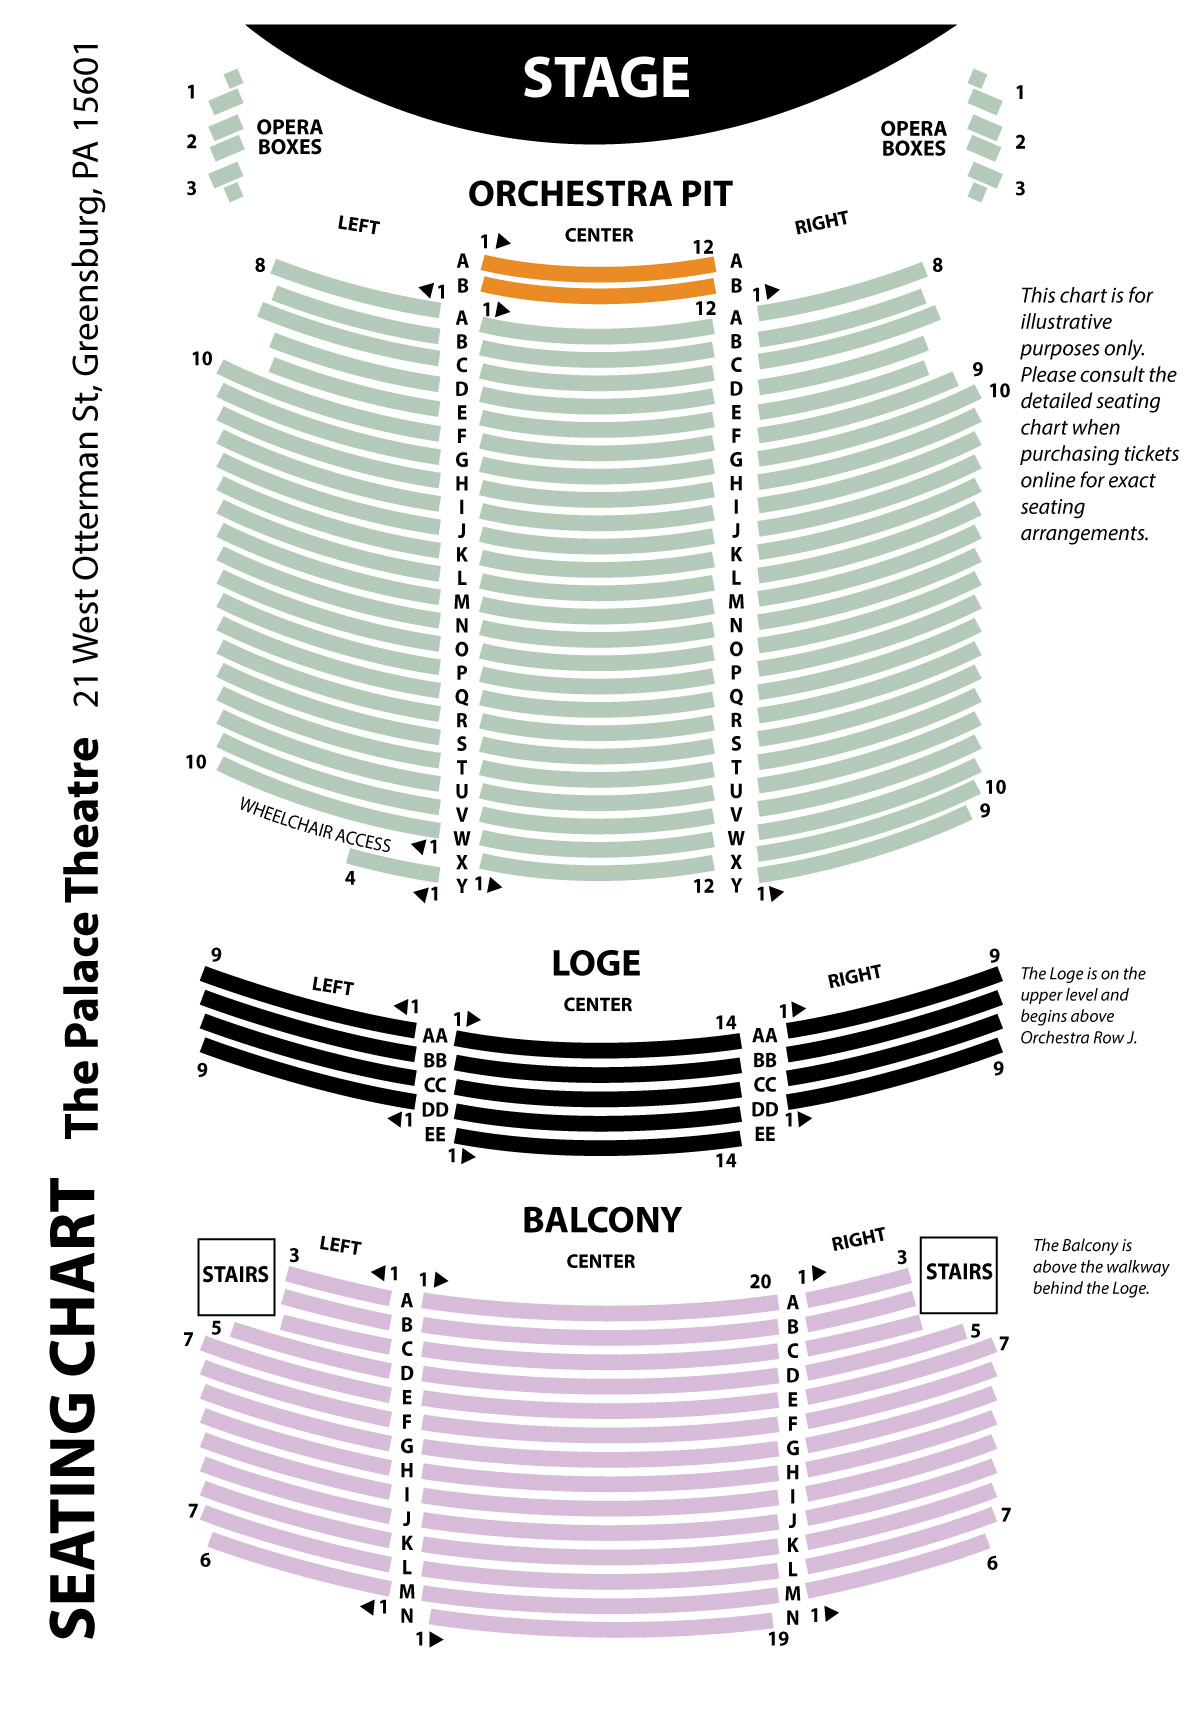 Seating chart the palace theatre